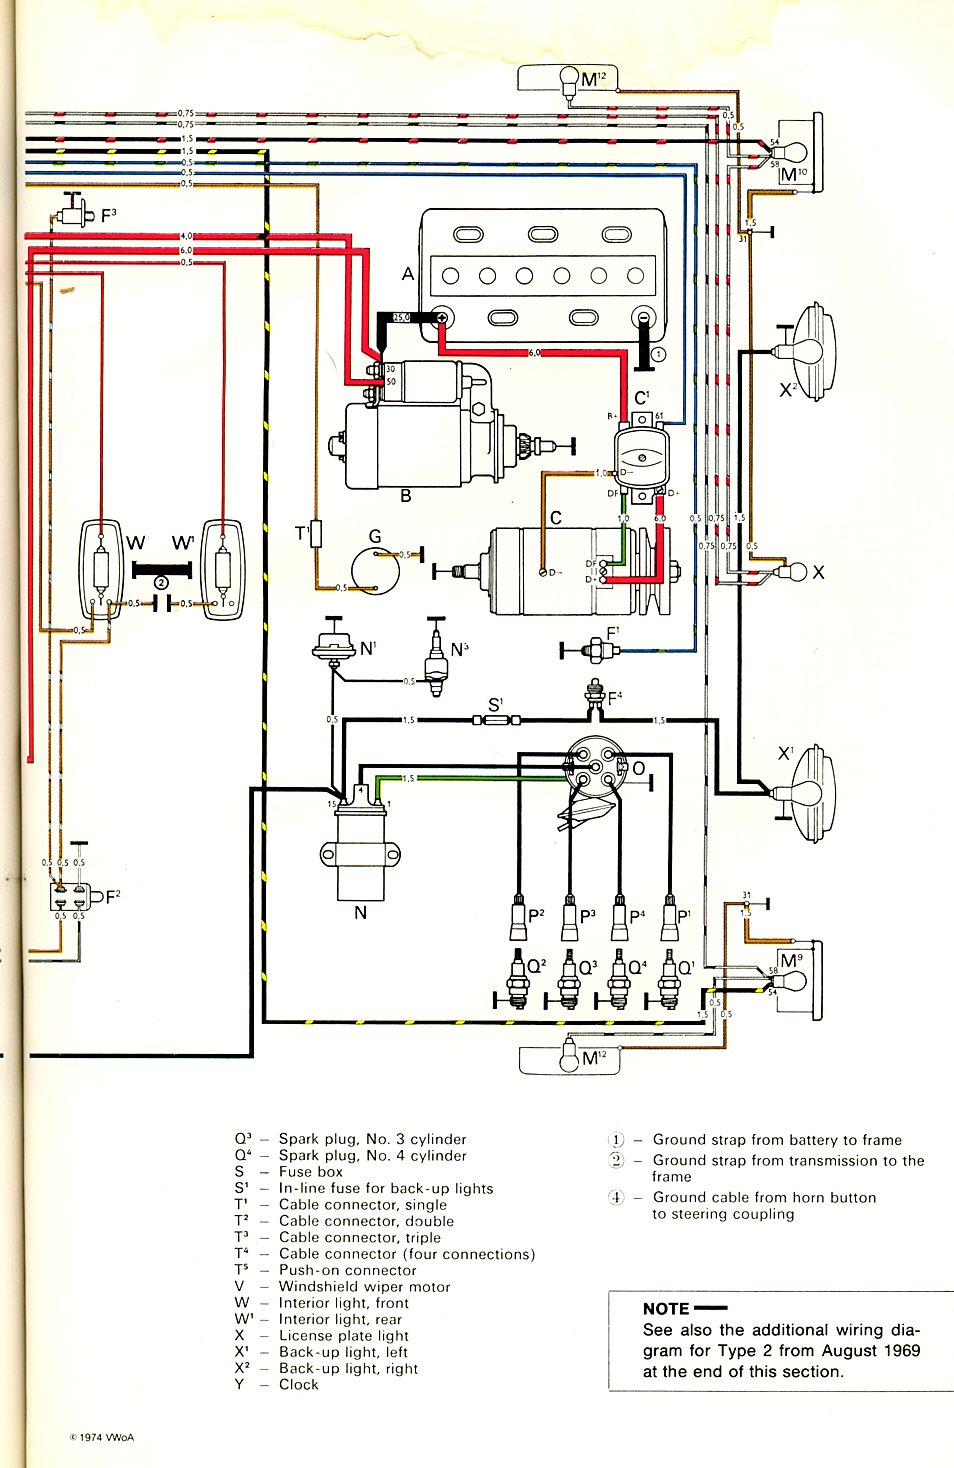 baybus_70b thesamba com type 2 wiring diagrams 1965 vw beetle wiring diagram at mifinder.co